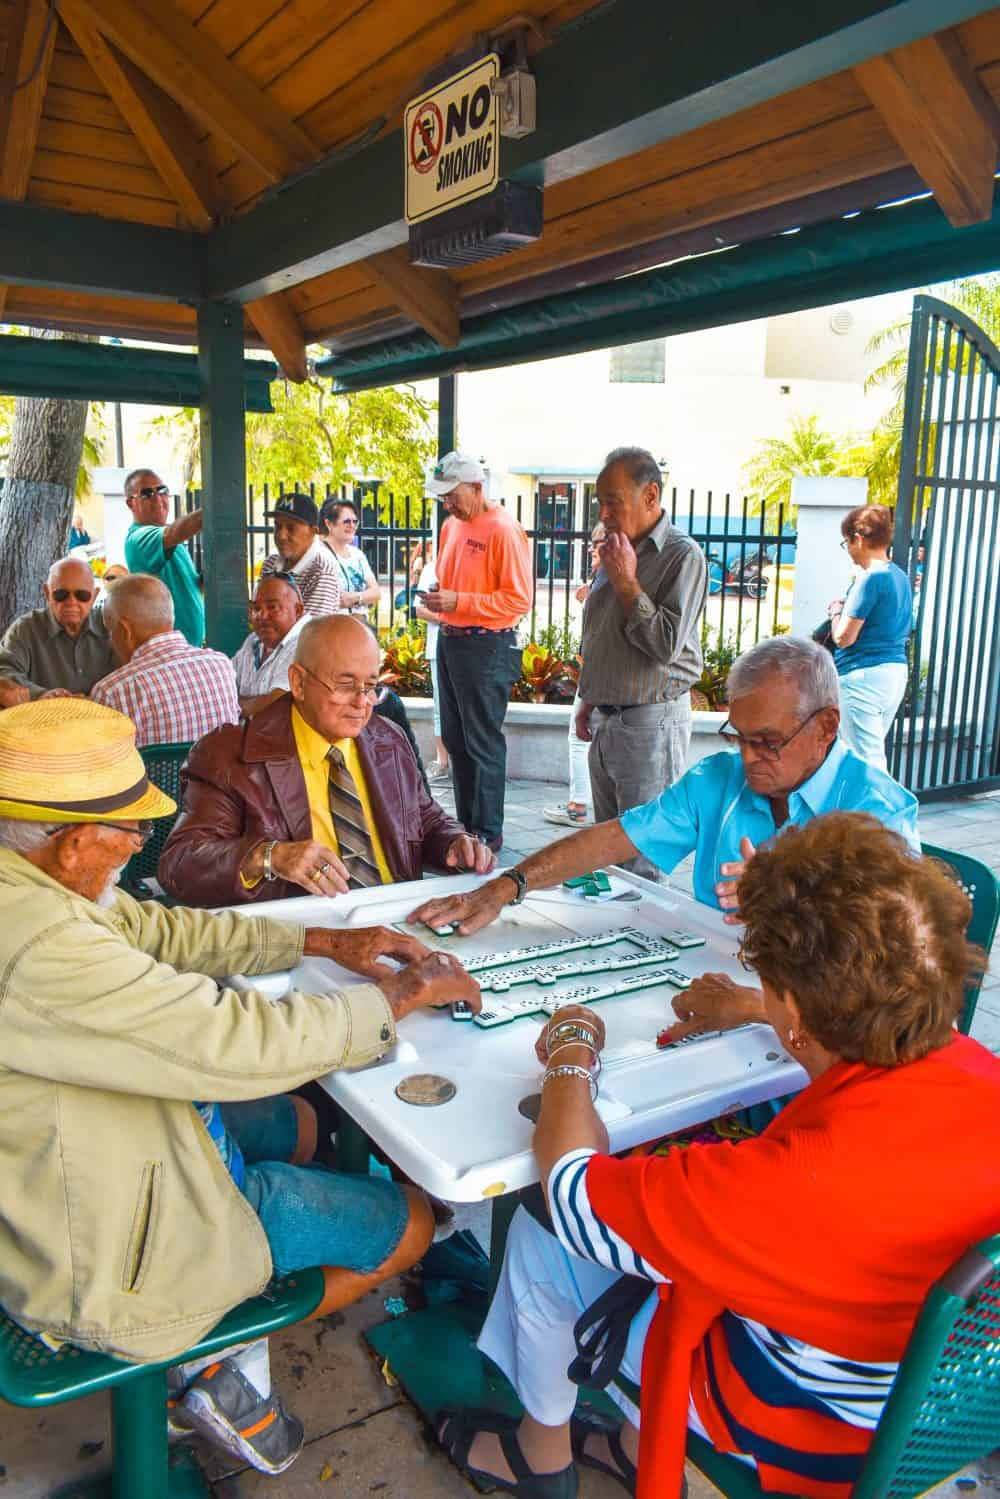 Little Havana locals playing dominoes